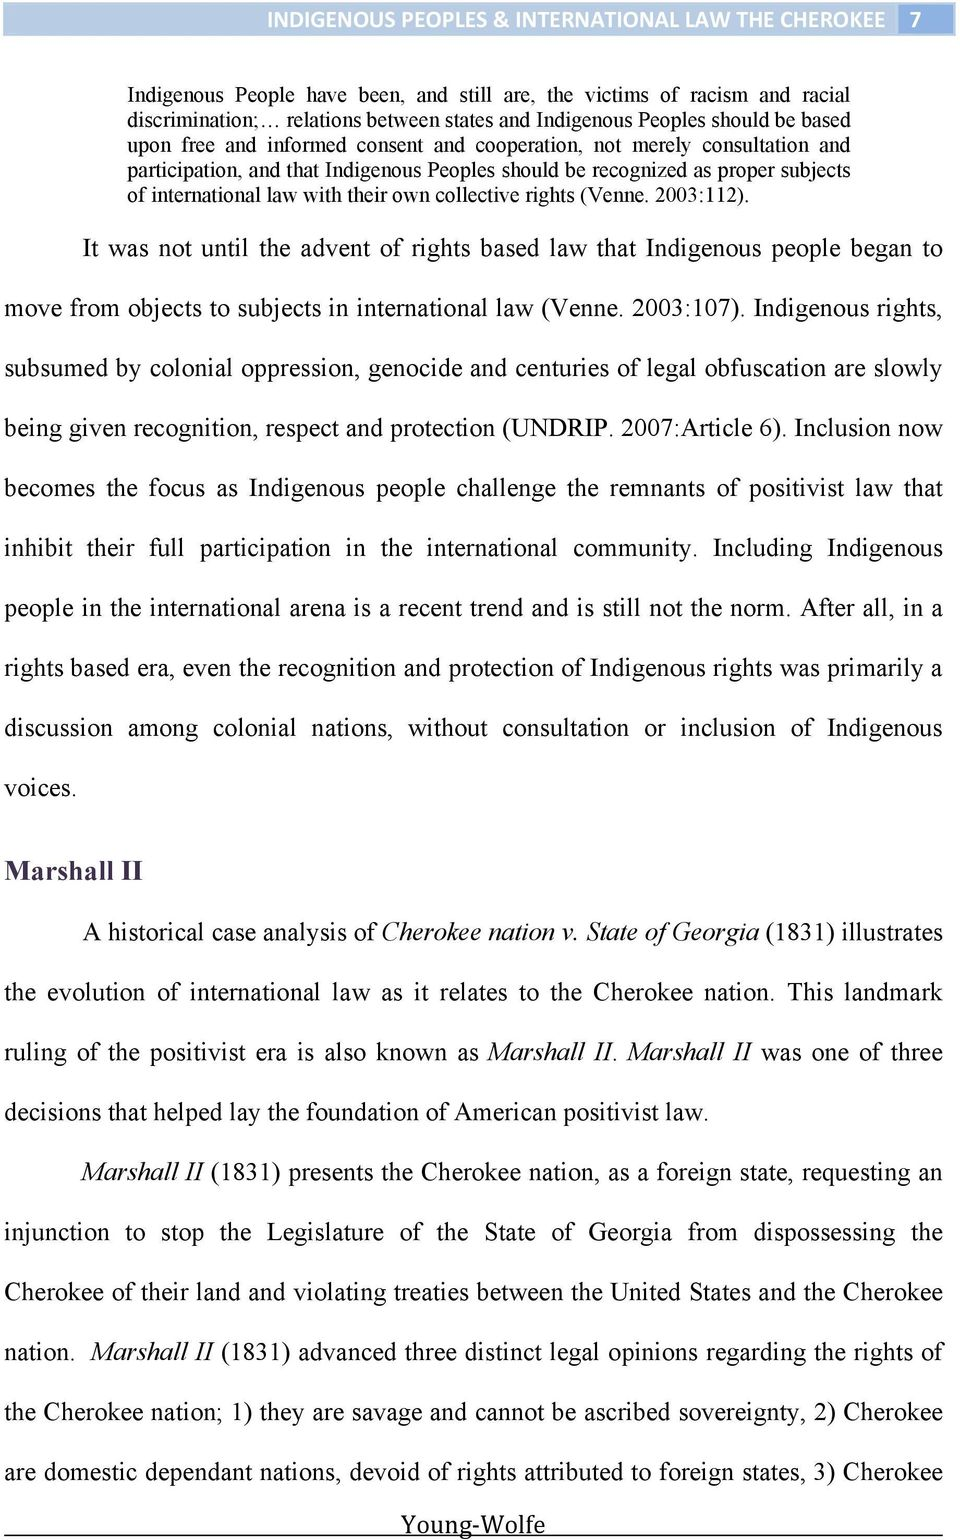 indigenous peoples as subjects of international law